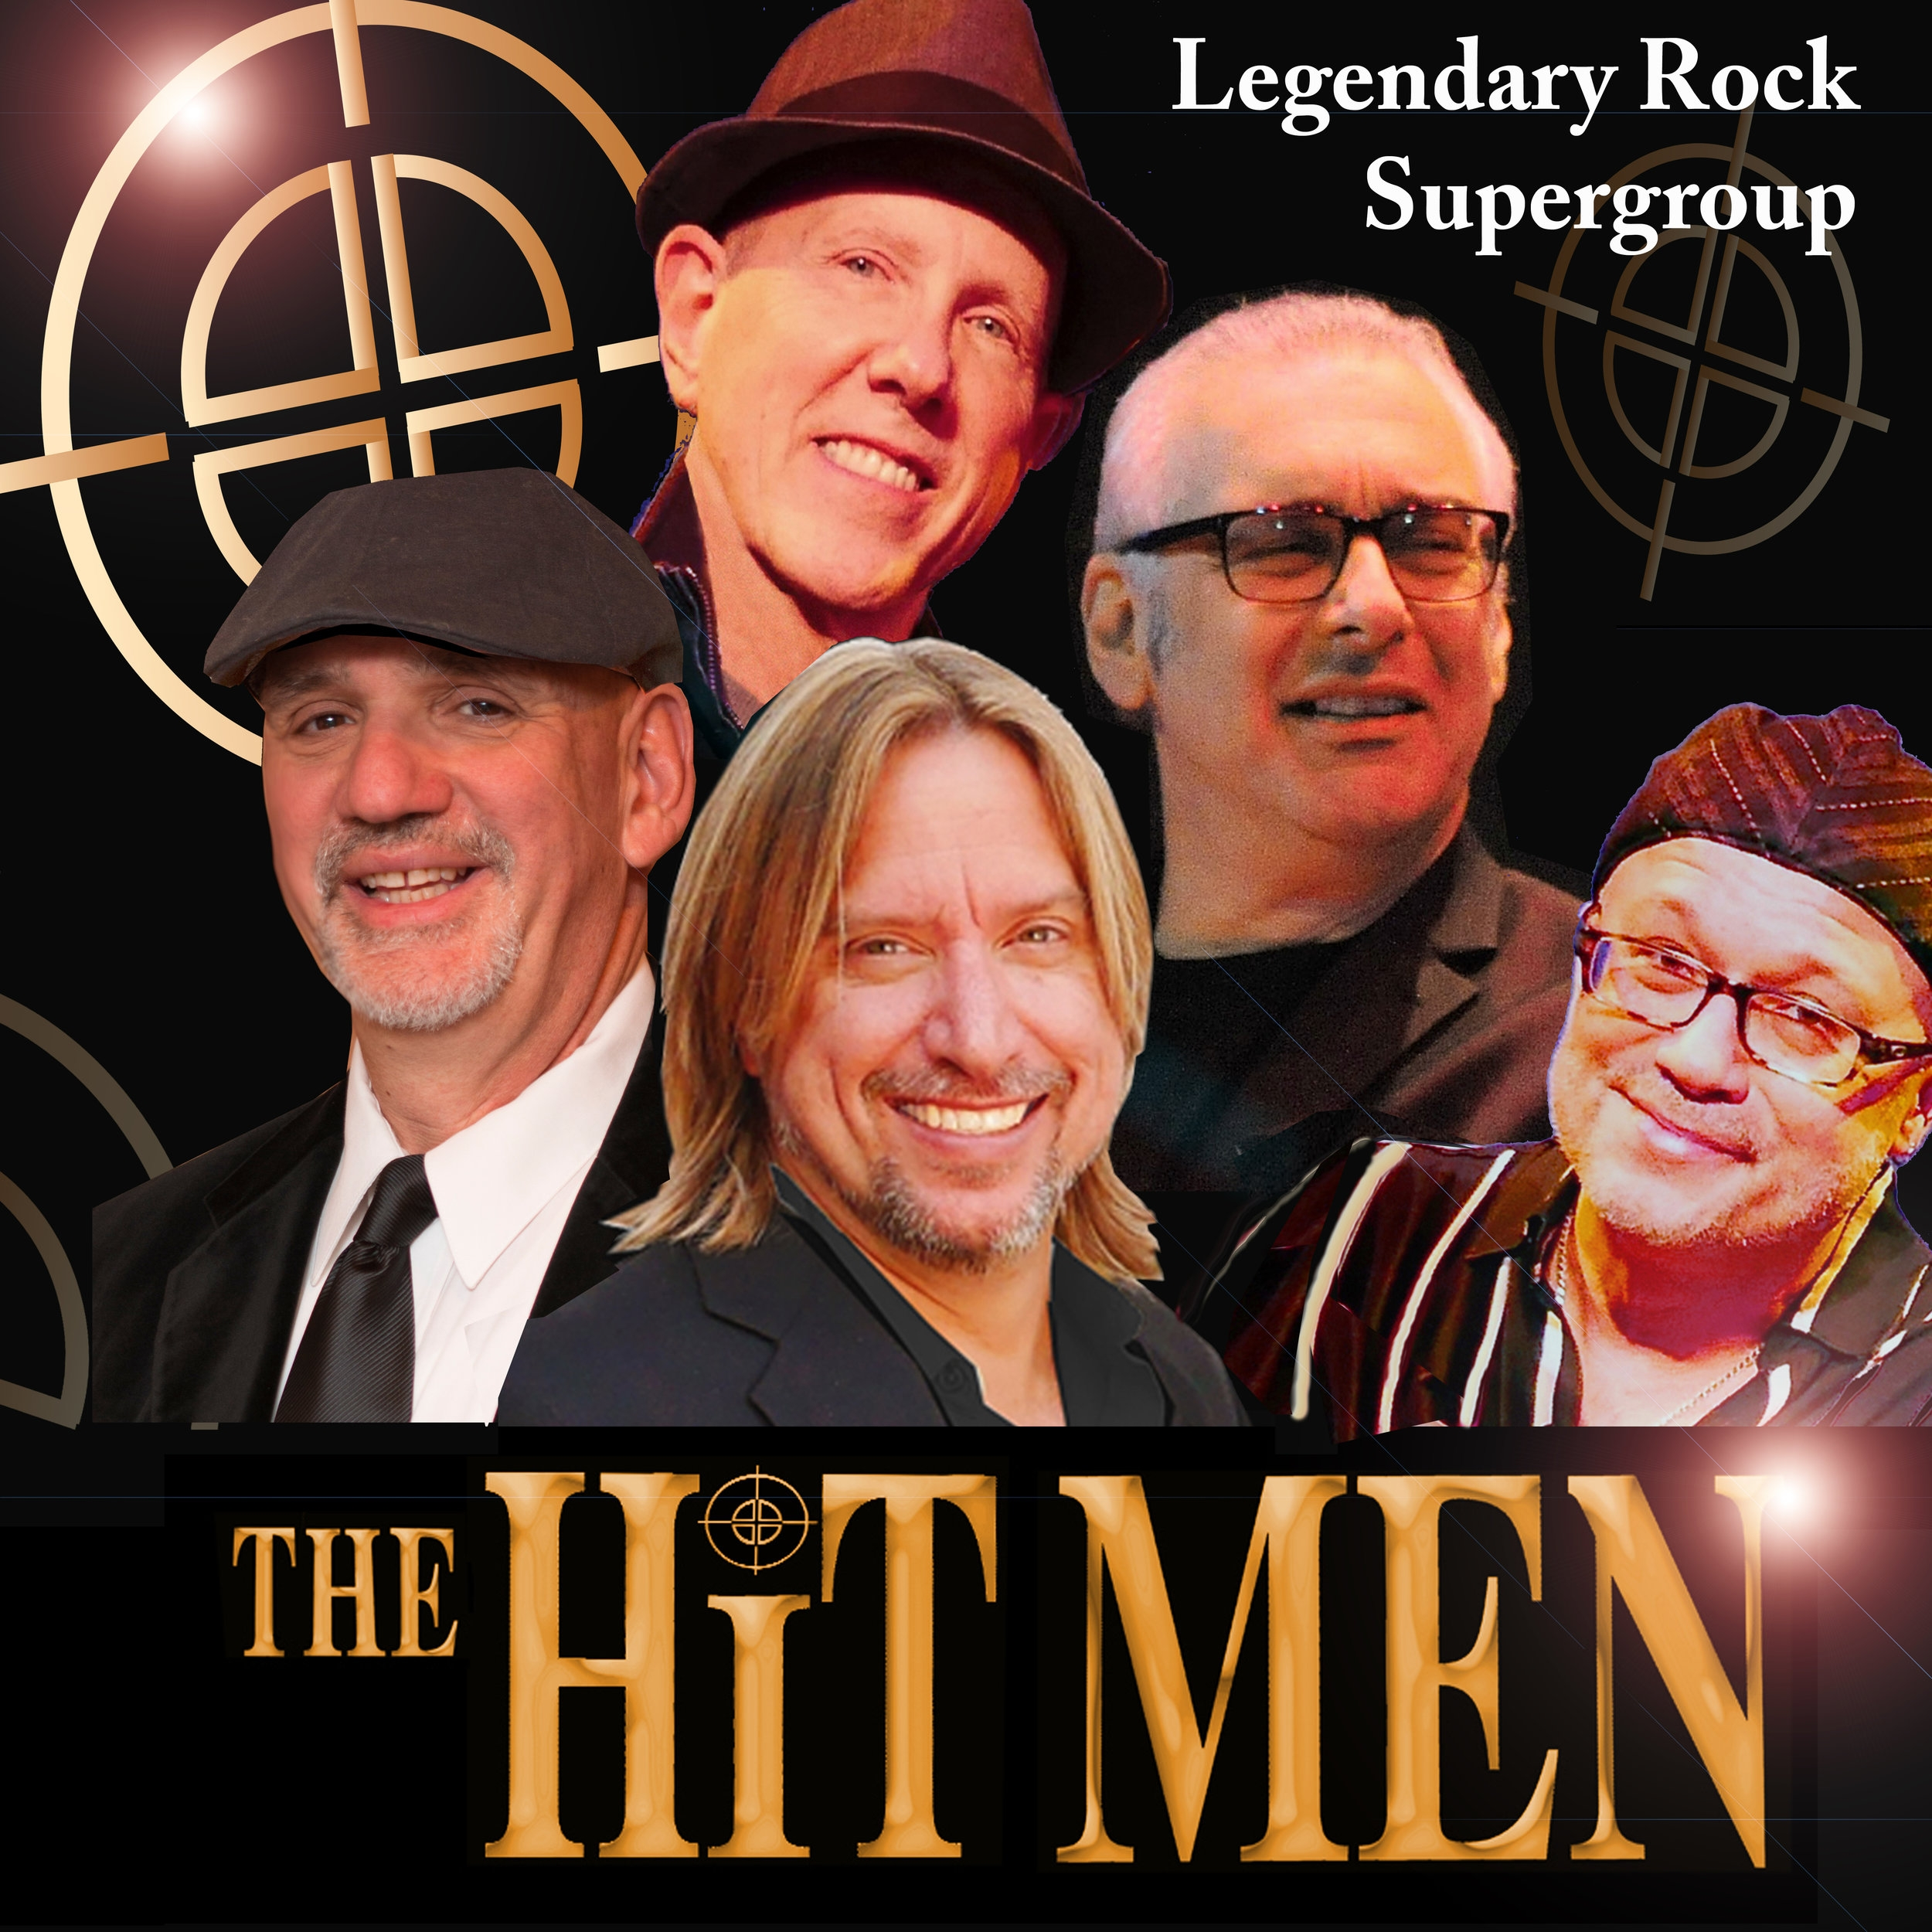 THE HIT MEN - Legendary Rock Supergroup